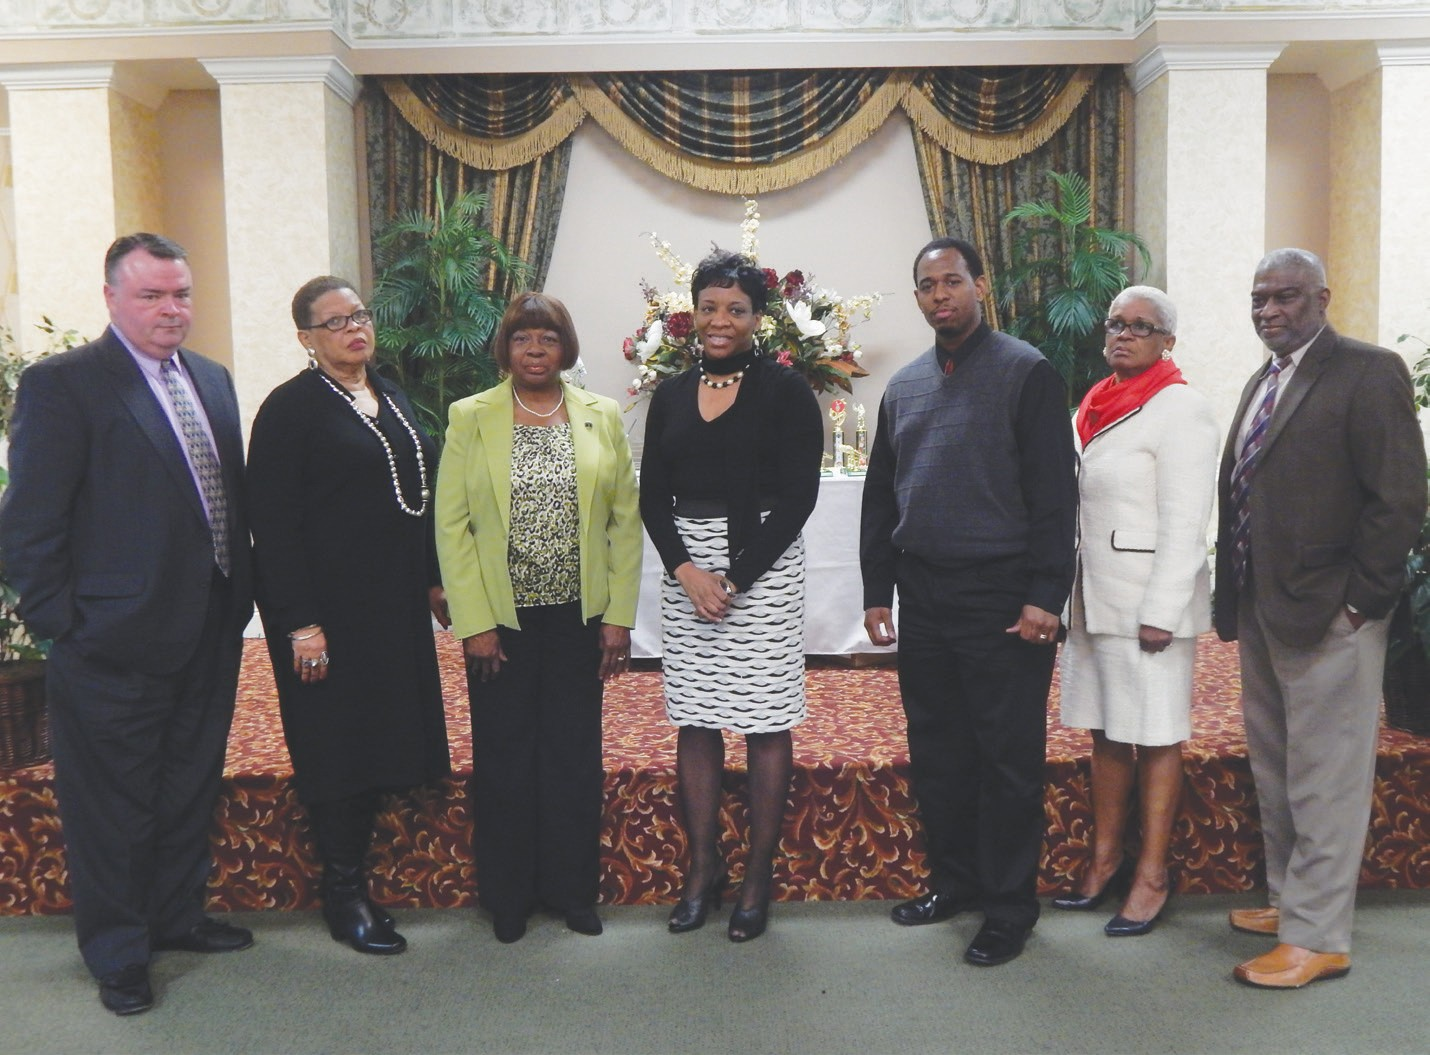 (L- R) Douglas Reed, President; Juanita Adams, 1st Vice Pres.; Clemontine Washington 2nd Vice Pres., Cathy James, Secretary, Fernando Foster, Asst. Secretary; Elaine Campbell, Treasurer; and Alfred Young, Asst. Treasurer.